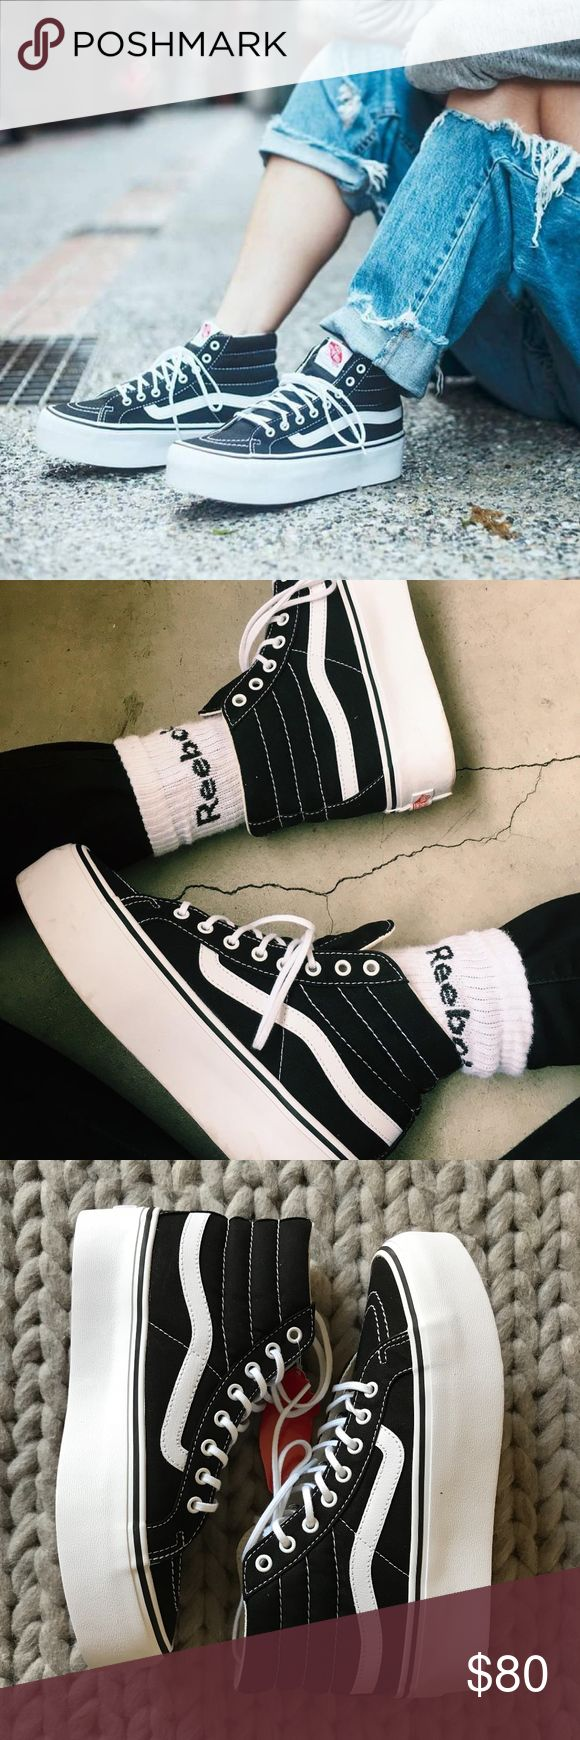 "Vans Sk8-Hi Platform Sneakers •On trend Vans Sk8 Hi Platform Sneakers. 1 1/2"" platform.  •Women's size 7.5, true to size.  •New in box with tags attached.  •No trades, no holds. PRICE IS FIRM, all offers will be automatically declined. Vans Shoes Sneakers"